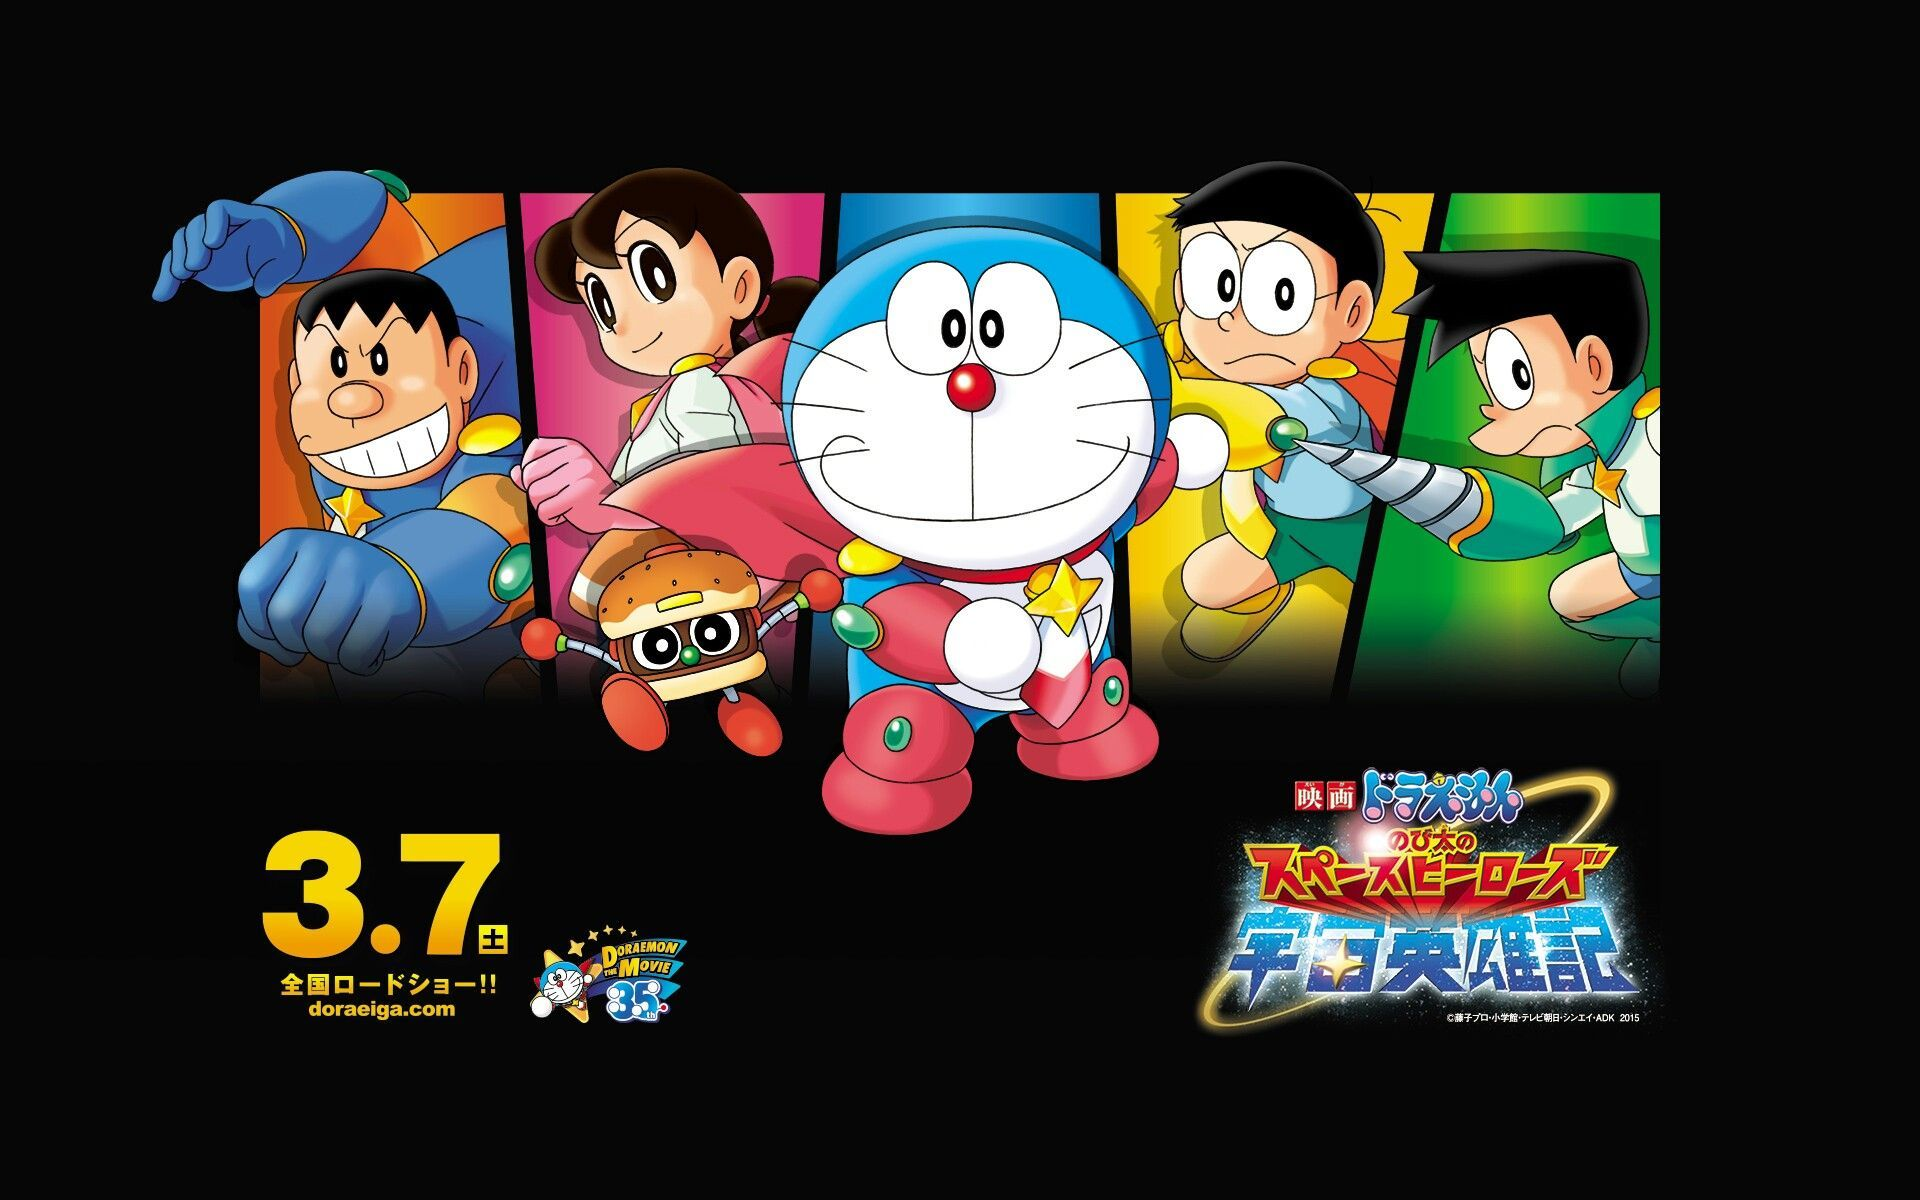 Check out the Doraemon Movies 2019 at